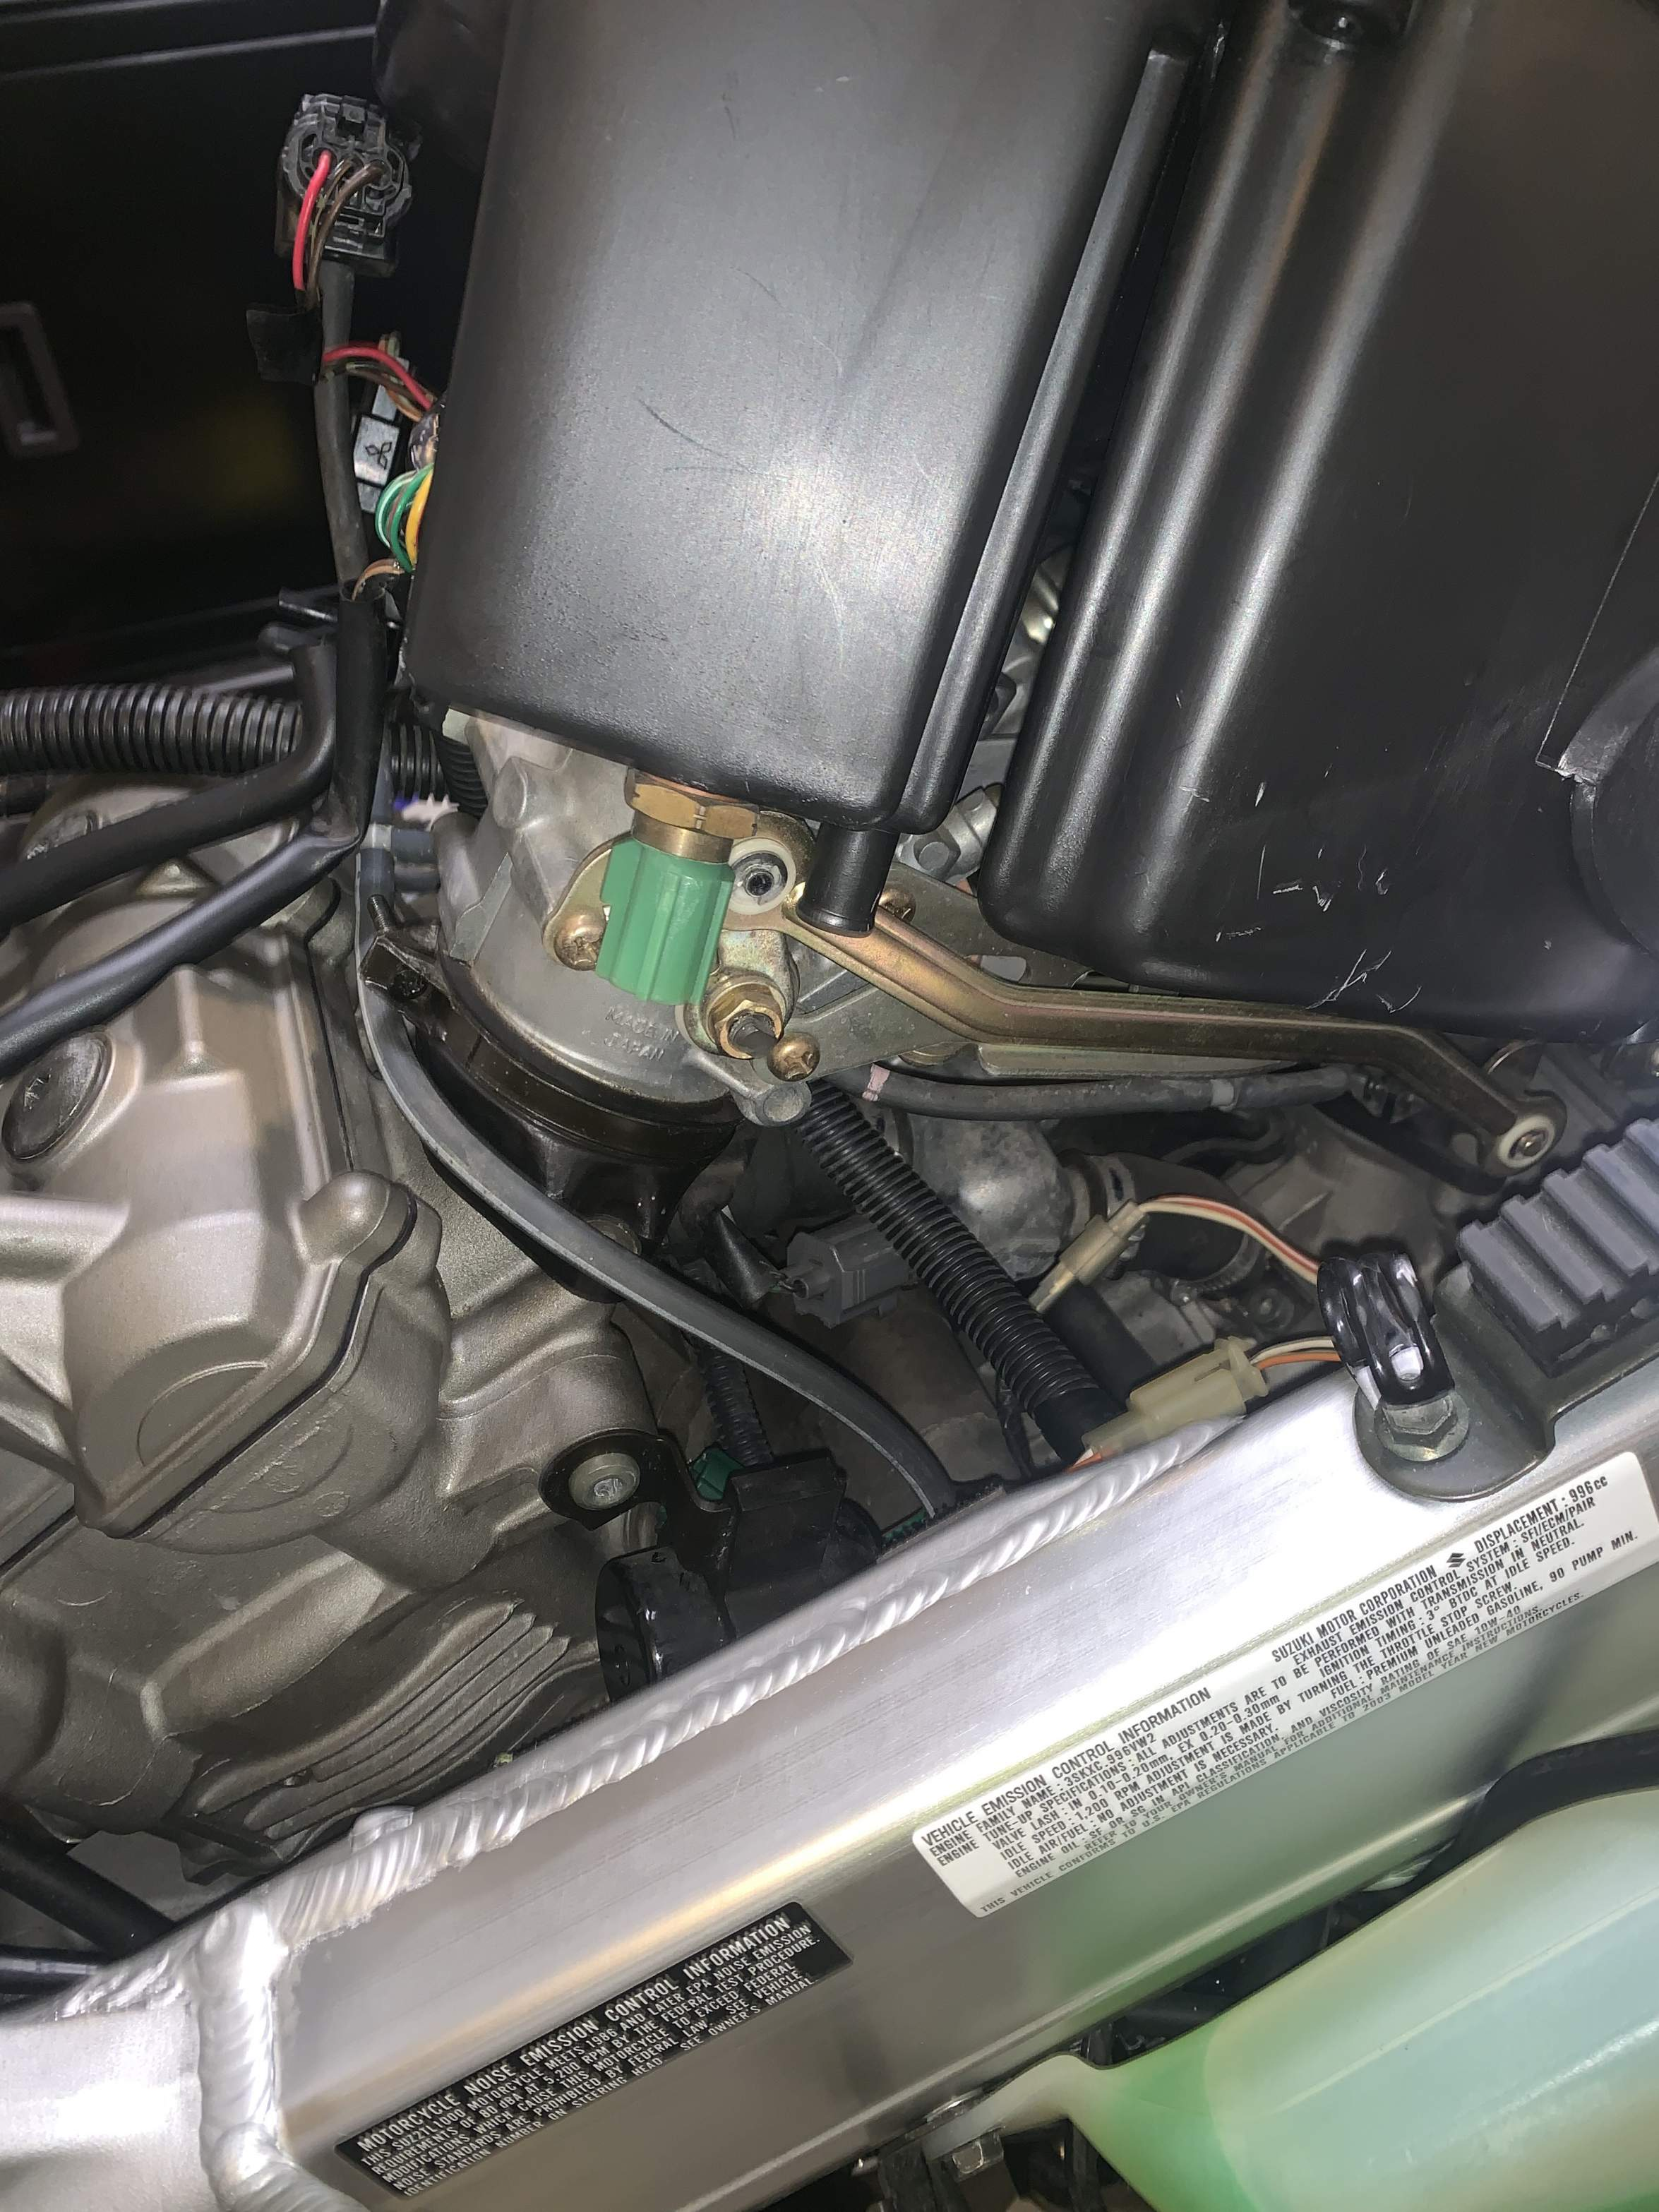 Airbox hose placement after pair vale removal...-image_29291.jpg